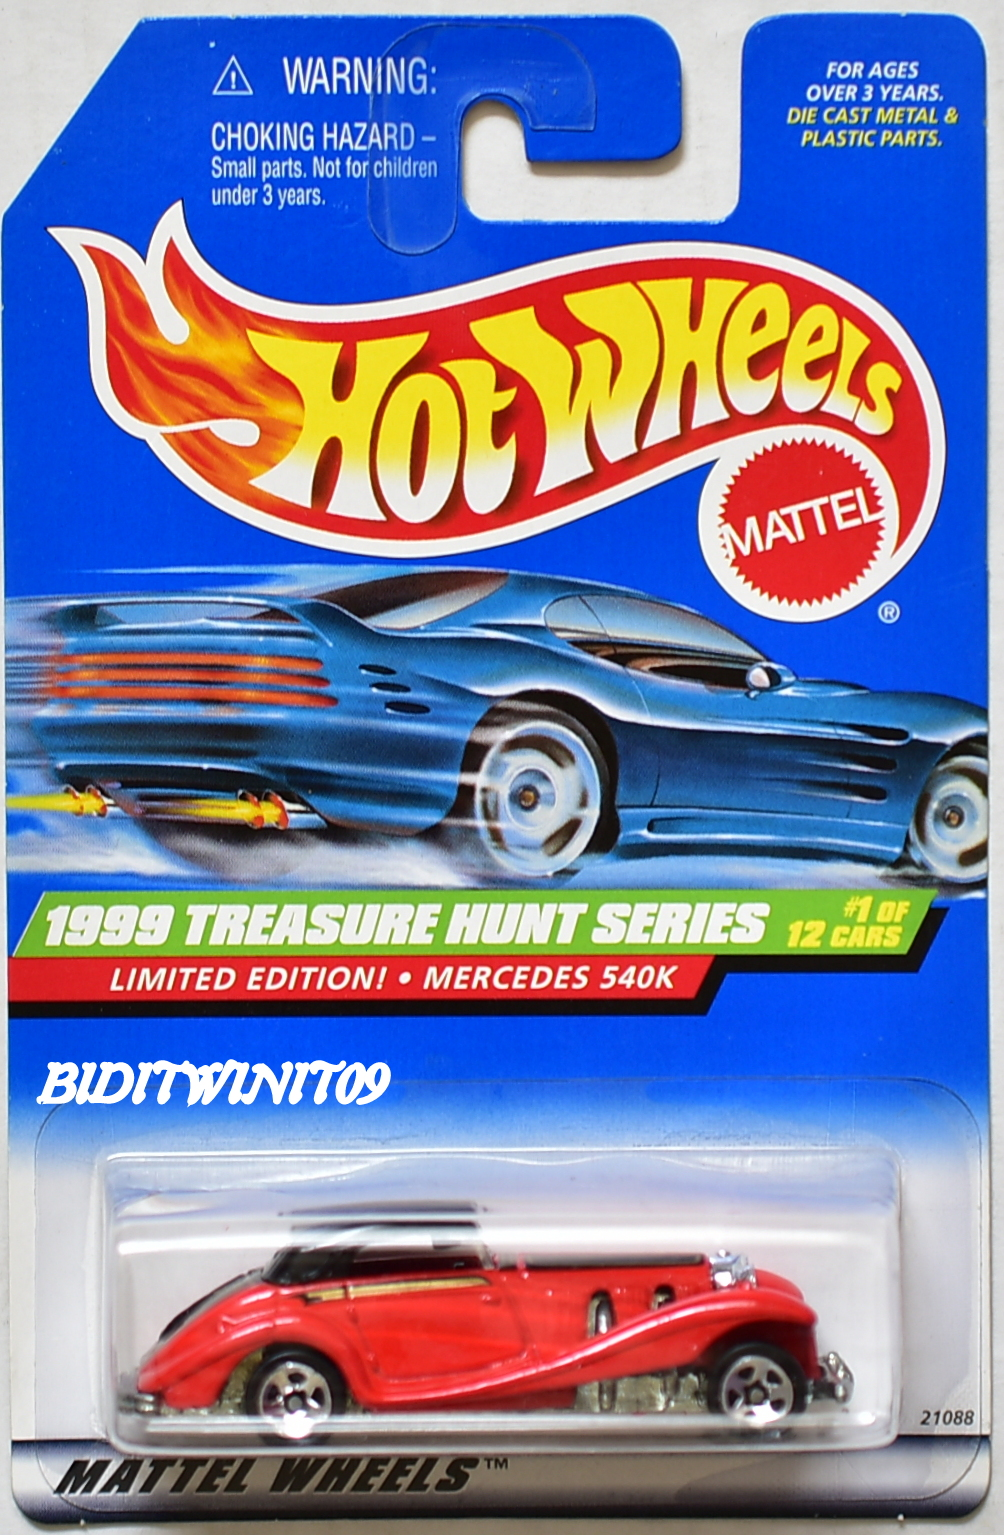 HOT WHEELS 1999 TREASURE HUNT SERIES LIMITED EDITION MERCEDES 540K RED E+